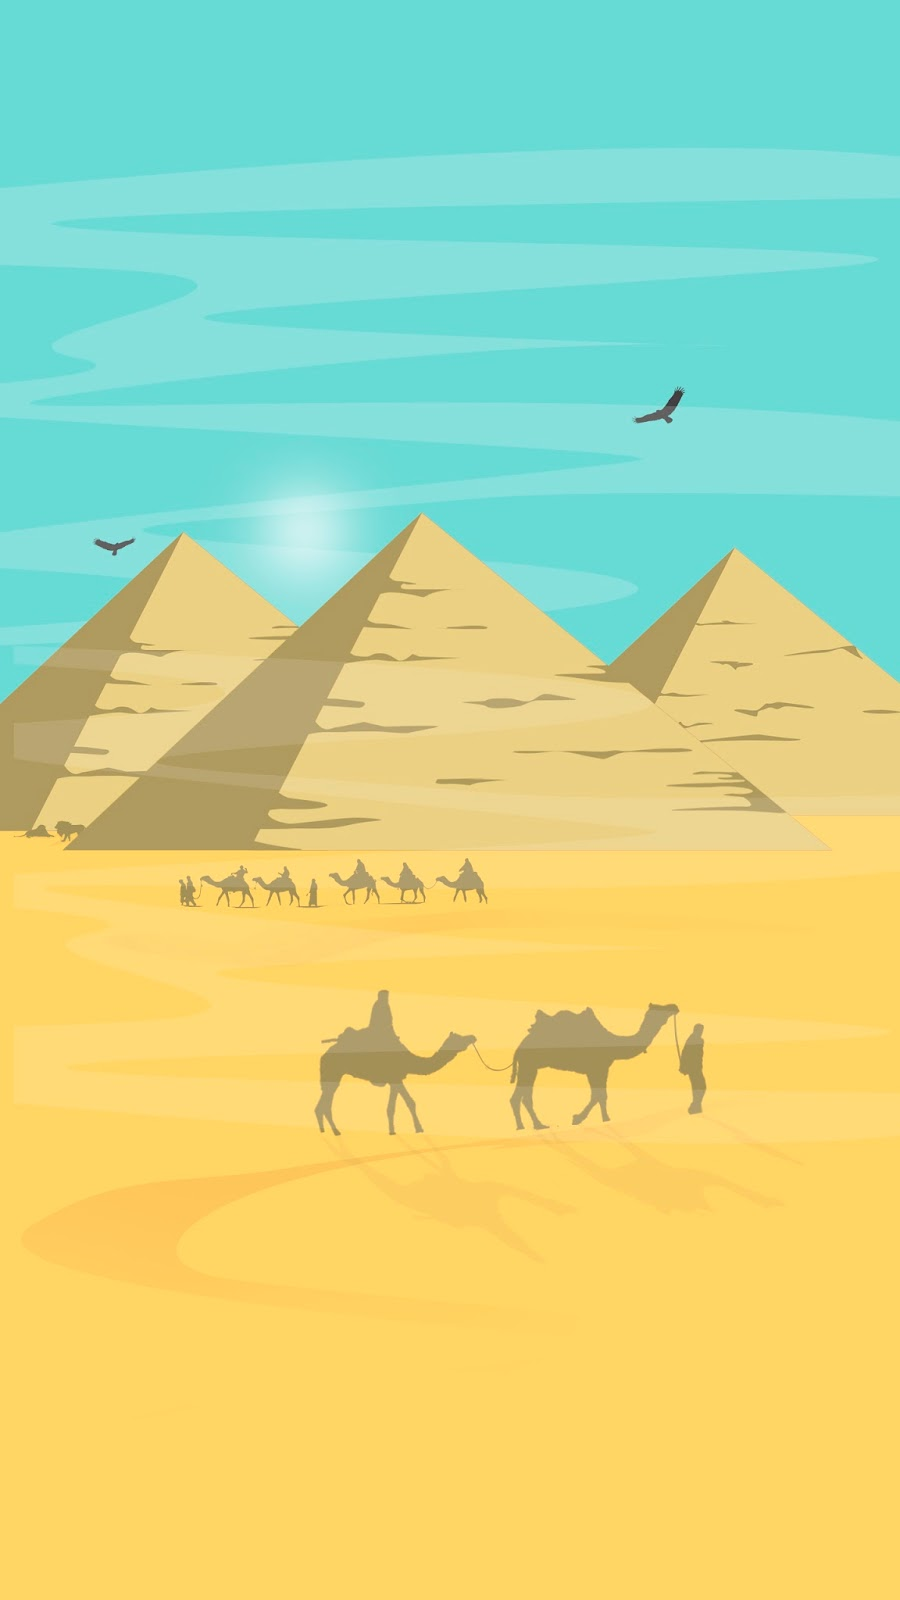 Download Free Mobile Wallpaper Egyptian Pyramids With Desert View